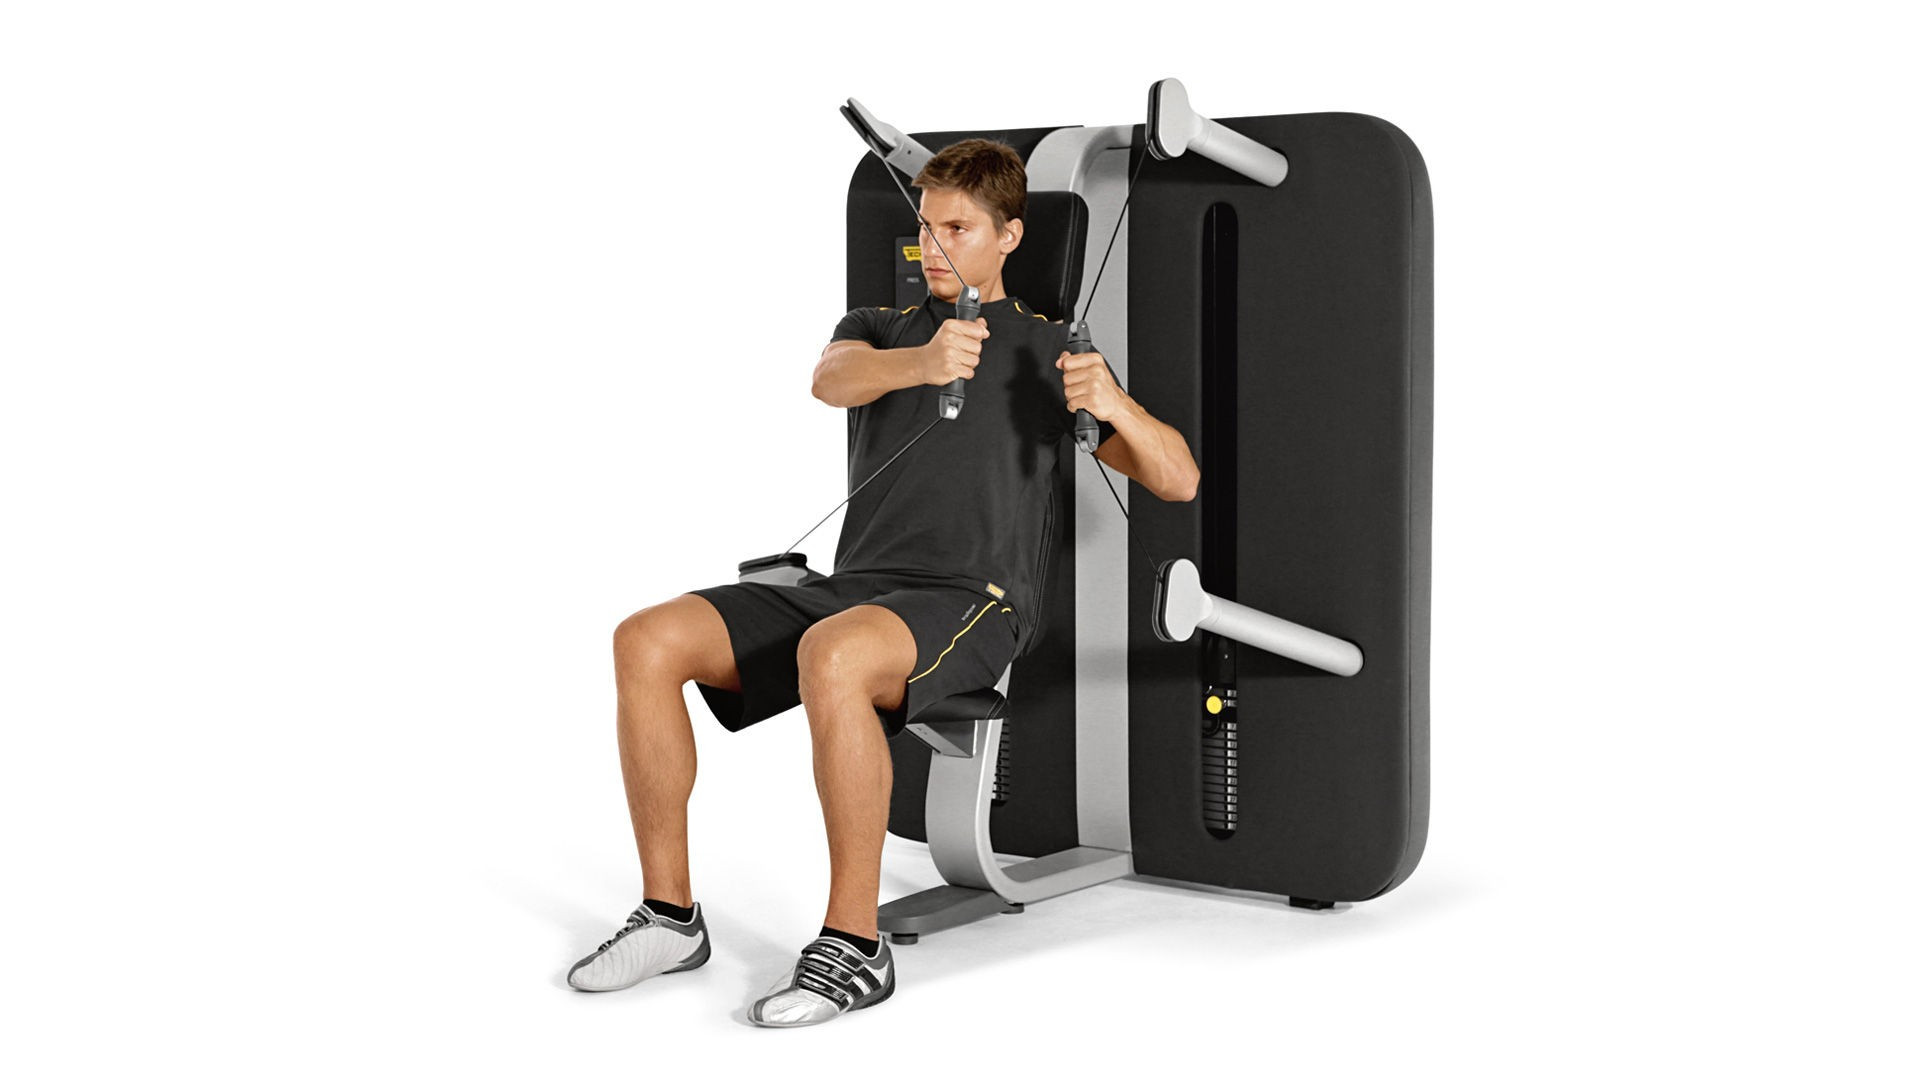 Kinesis seater chest press machine technogym for Technogym all in one